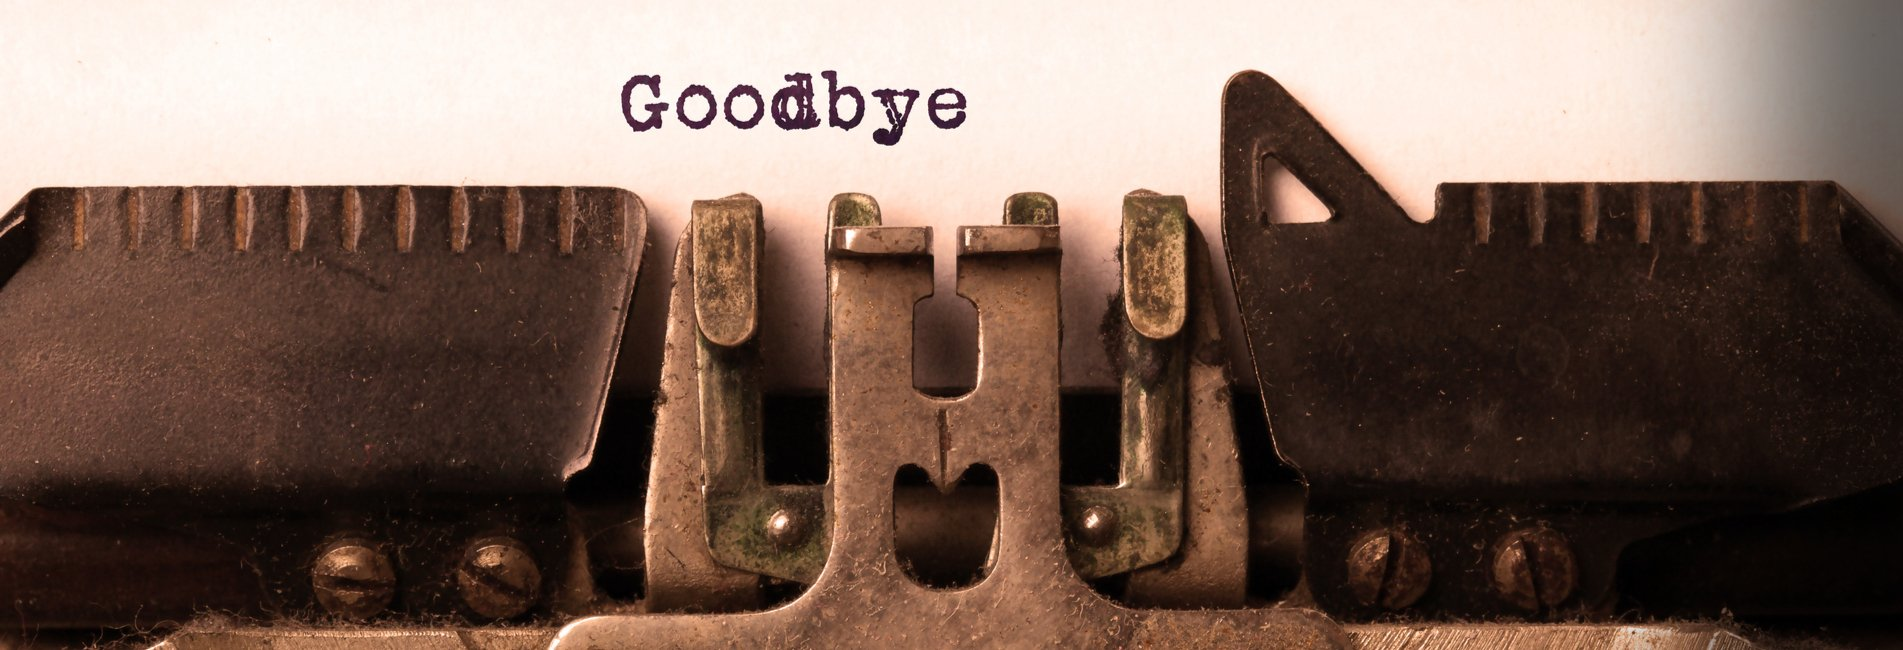 """Goodbye Letter Addiction Resurgence - An image of a typewriter that is typing """"goodbye"""" because penning a goodbye letter to drugs when entering treatment is a good way to start your sobriety journey."""